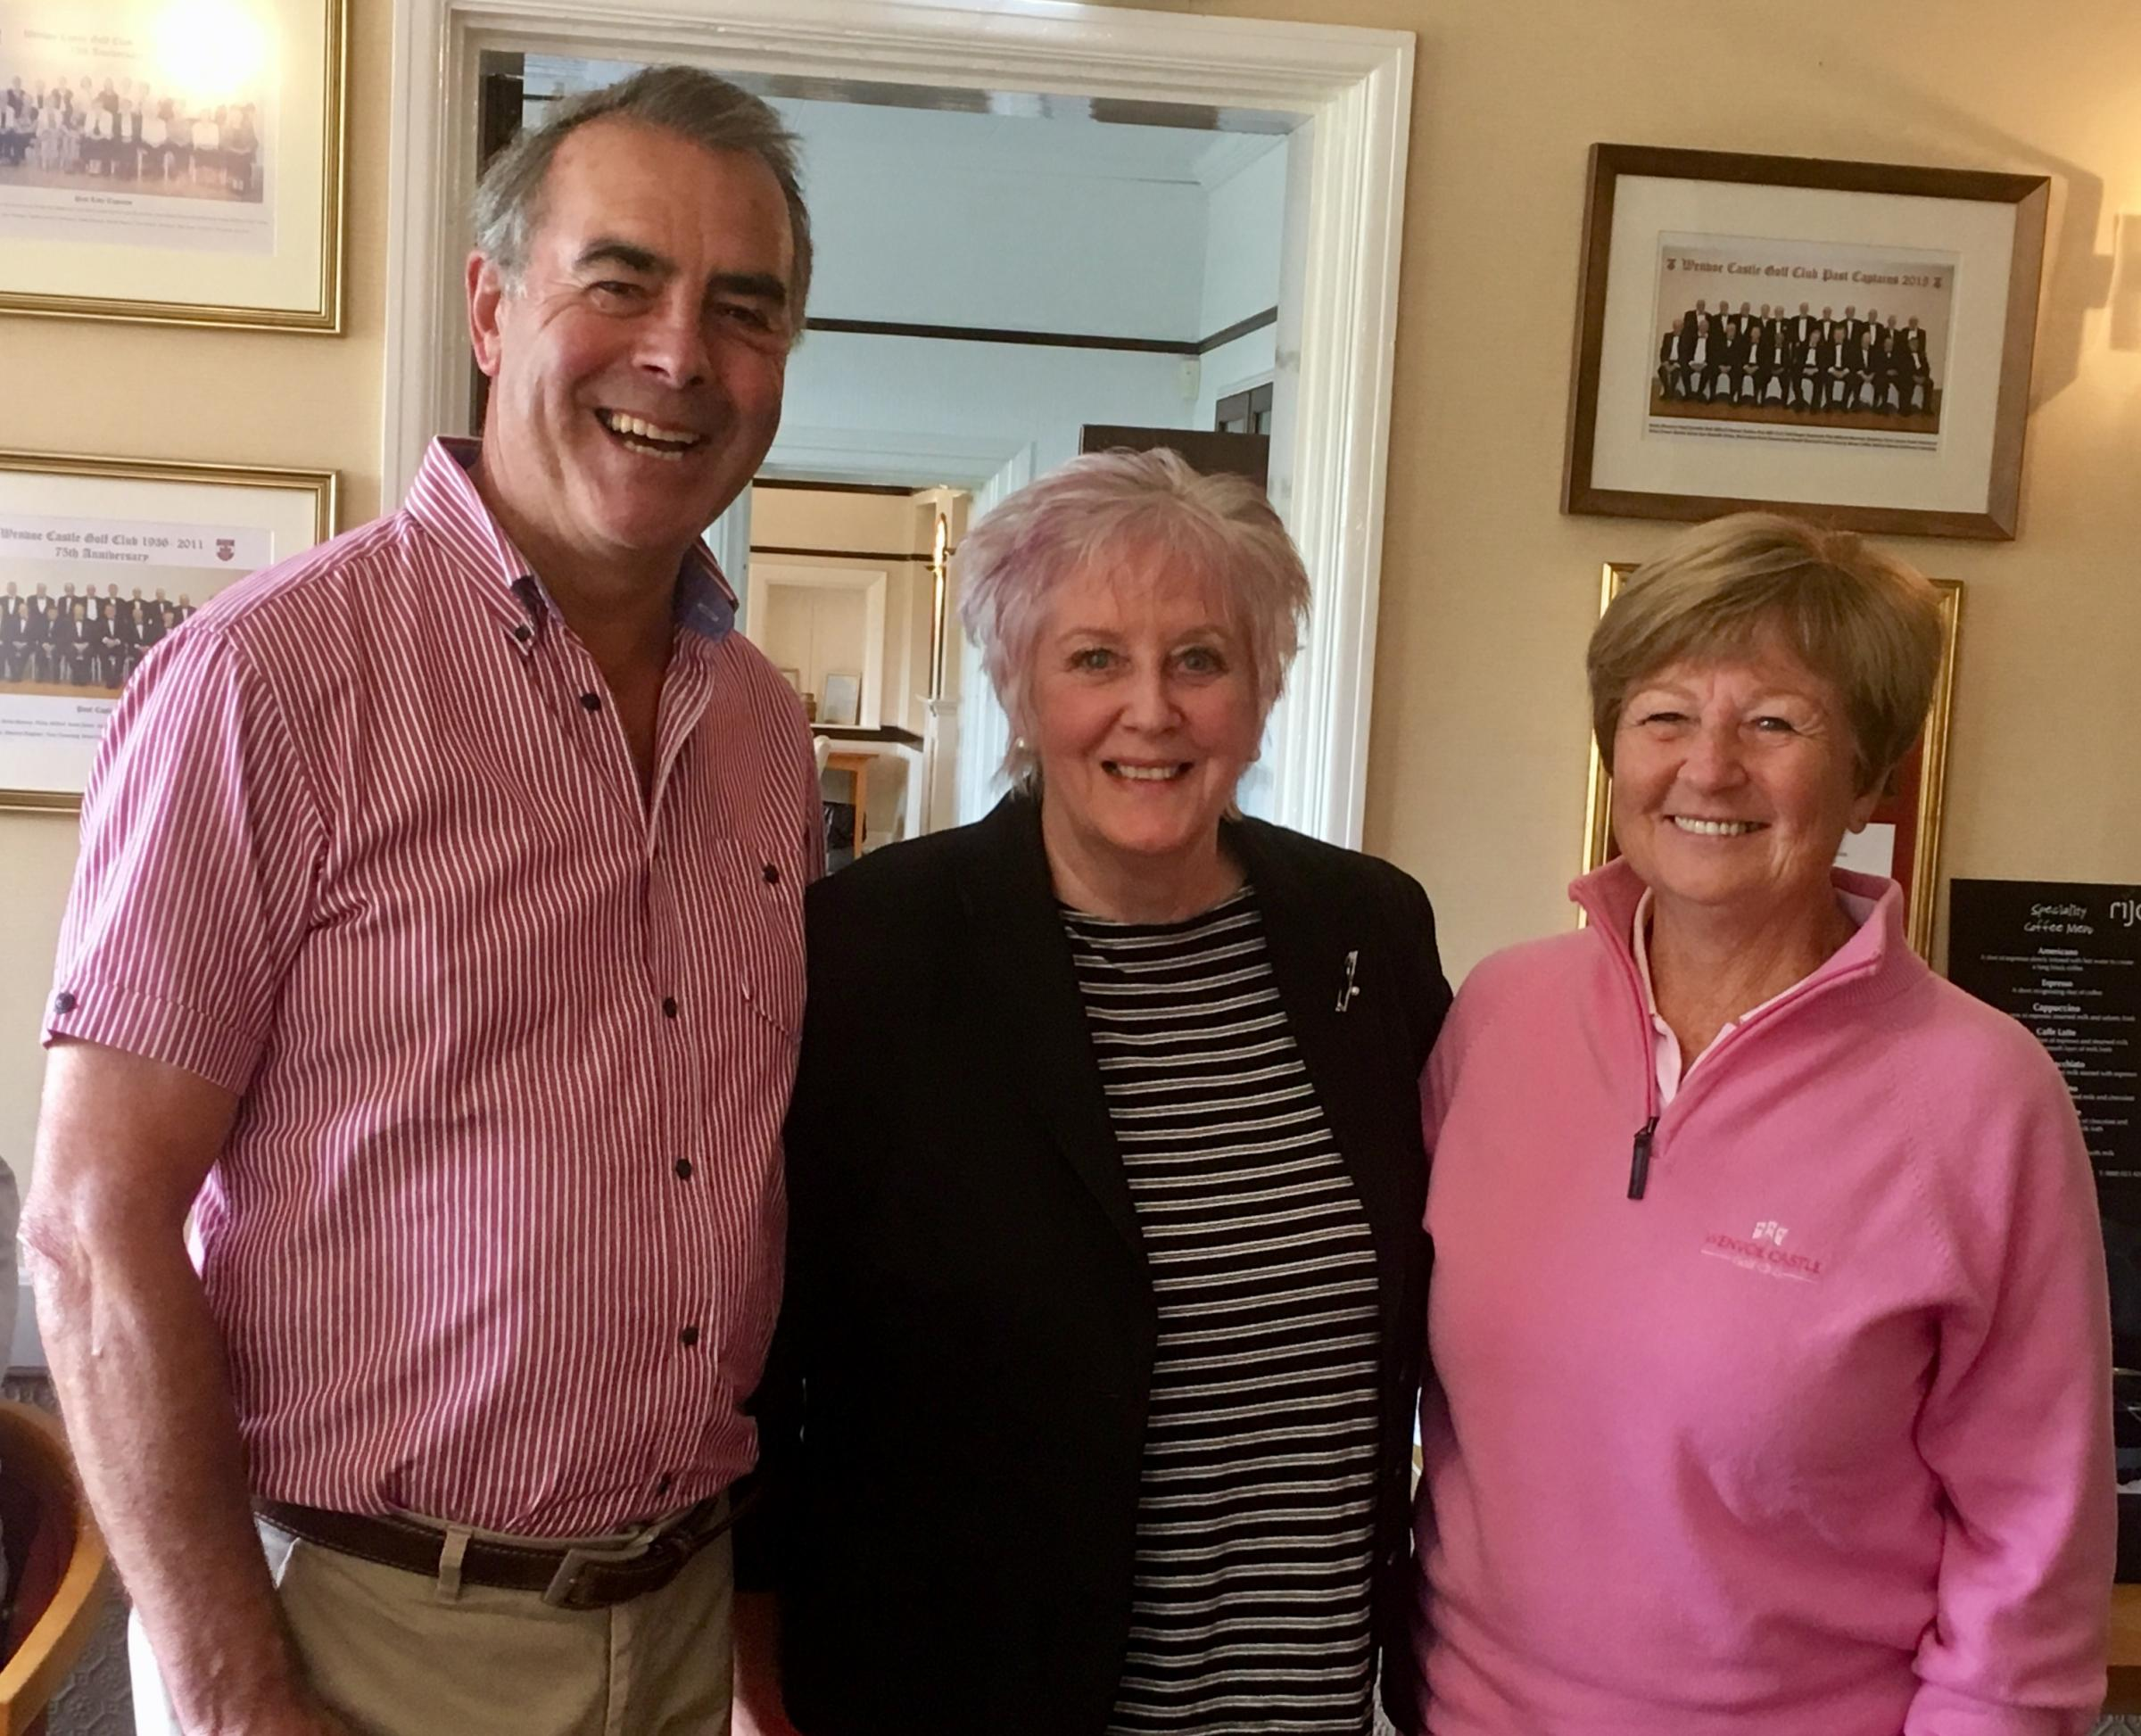 Lesley Sherrard, club captain (centre) congratulating Jeff and Lynda Hudd on winning the Bowen Greenwood Trophy